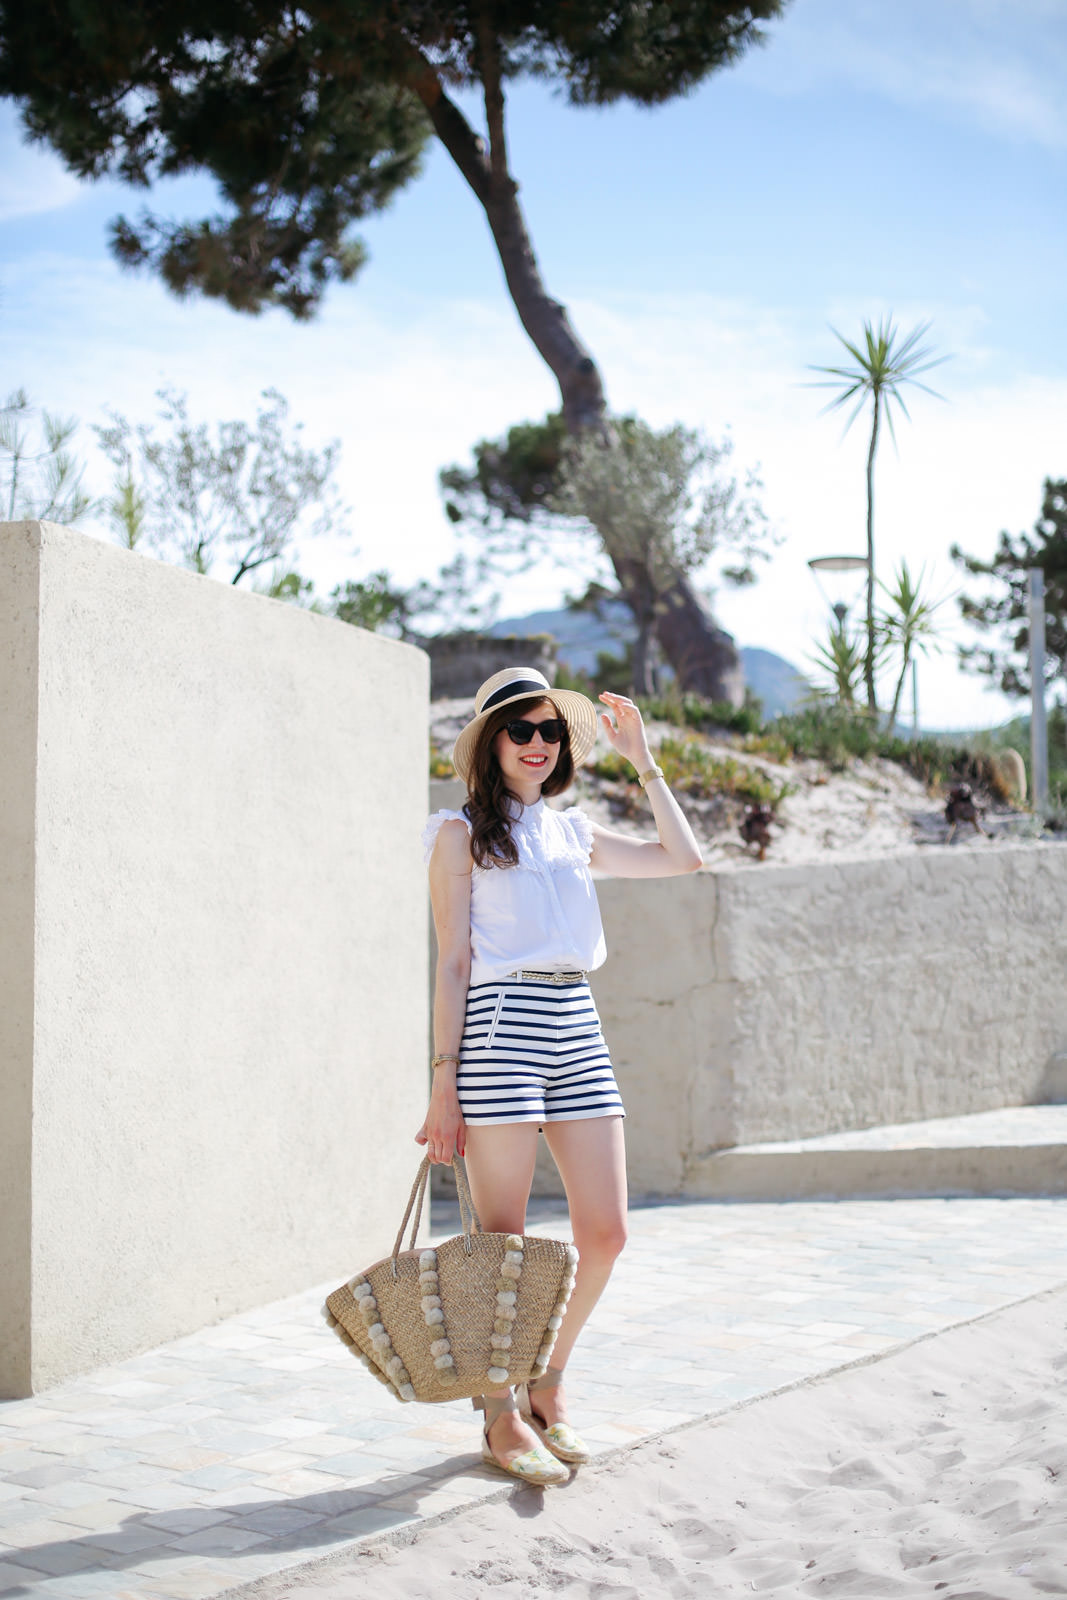 Blog-Mode-And-The-City-Looks-Les-Pieds-Dans-Le-Sable-A-Calvi-3